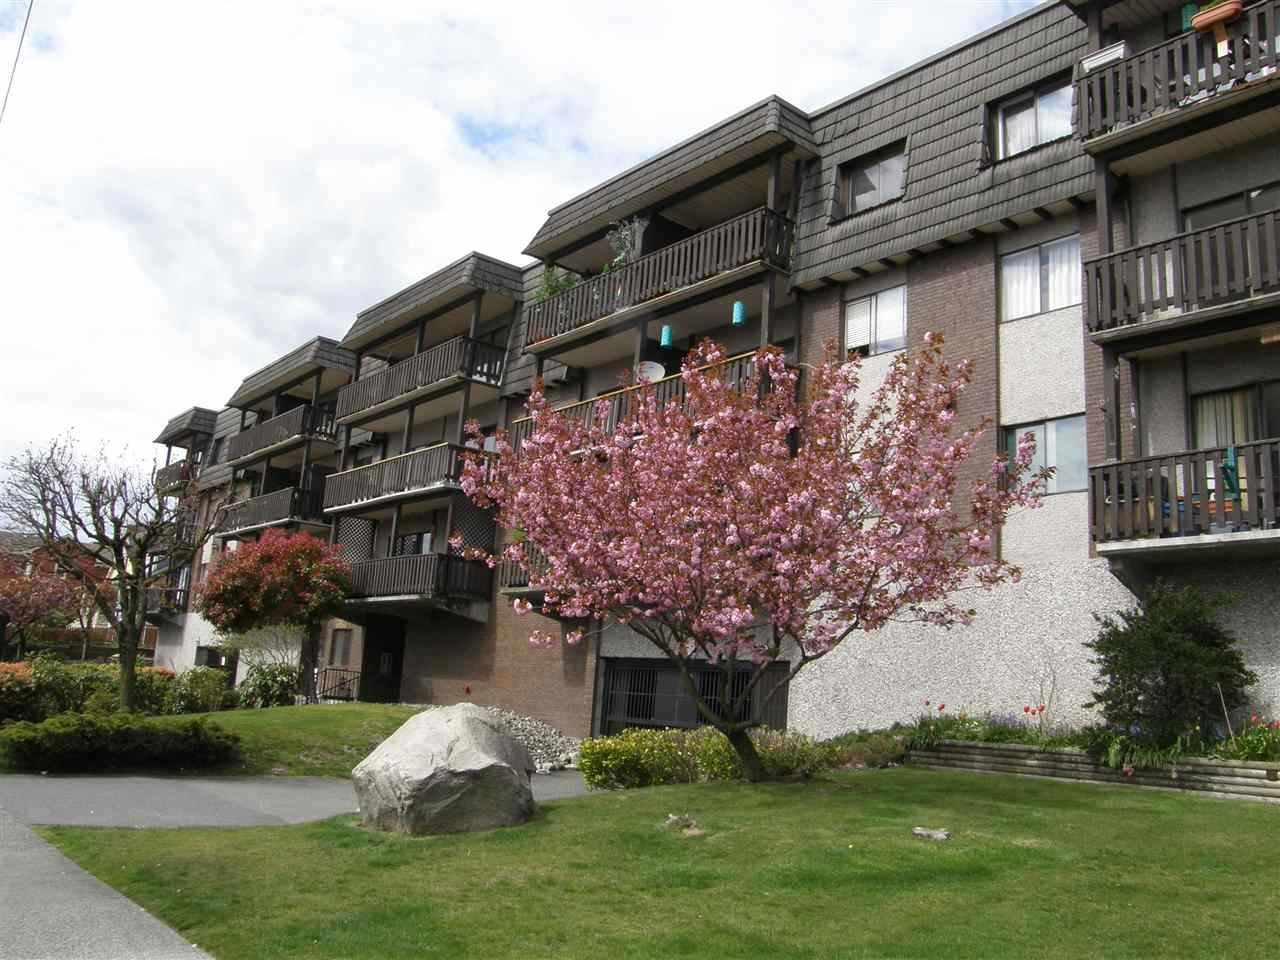 """Main Photo: 107 170 E 3RD. Street in North Vancouver: Lower Lonsdale Condo for sale in """"Bristol Court"""" : MLS®# R2394183"""